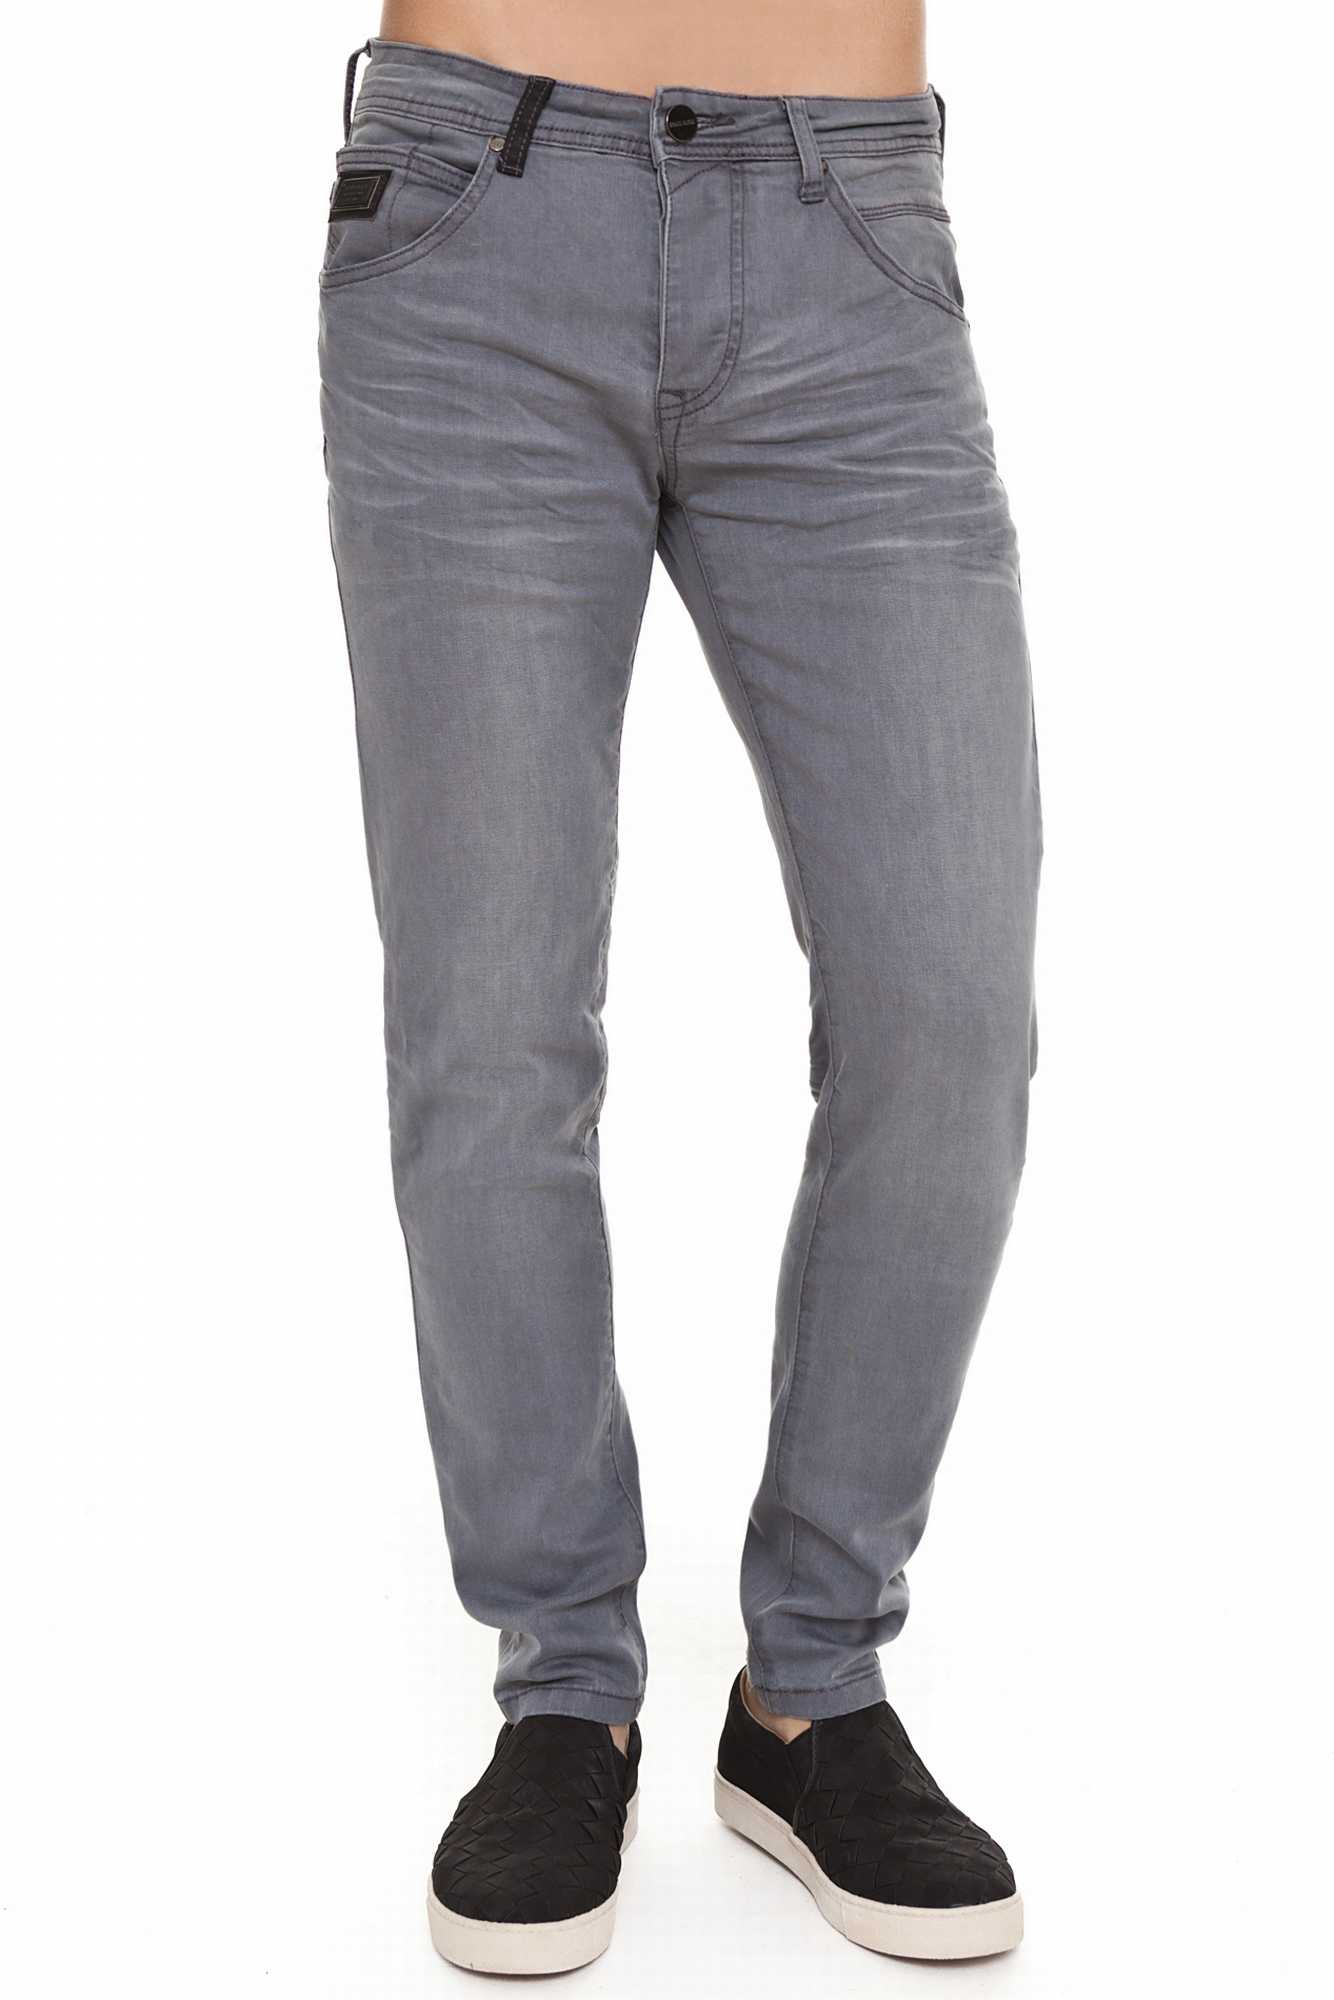 Born Rich OSMIUM Jeans For Men Color Casual Grey BR2B109914GR3BRC2-3